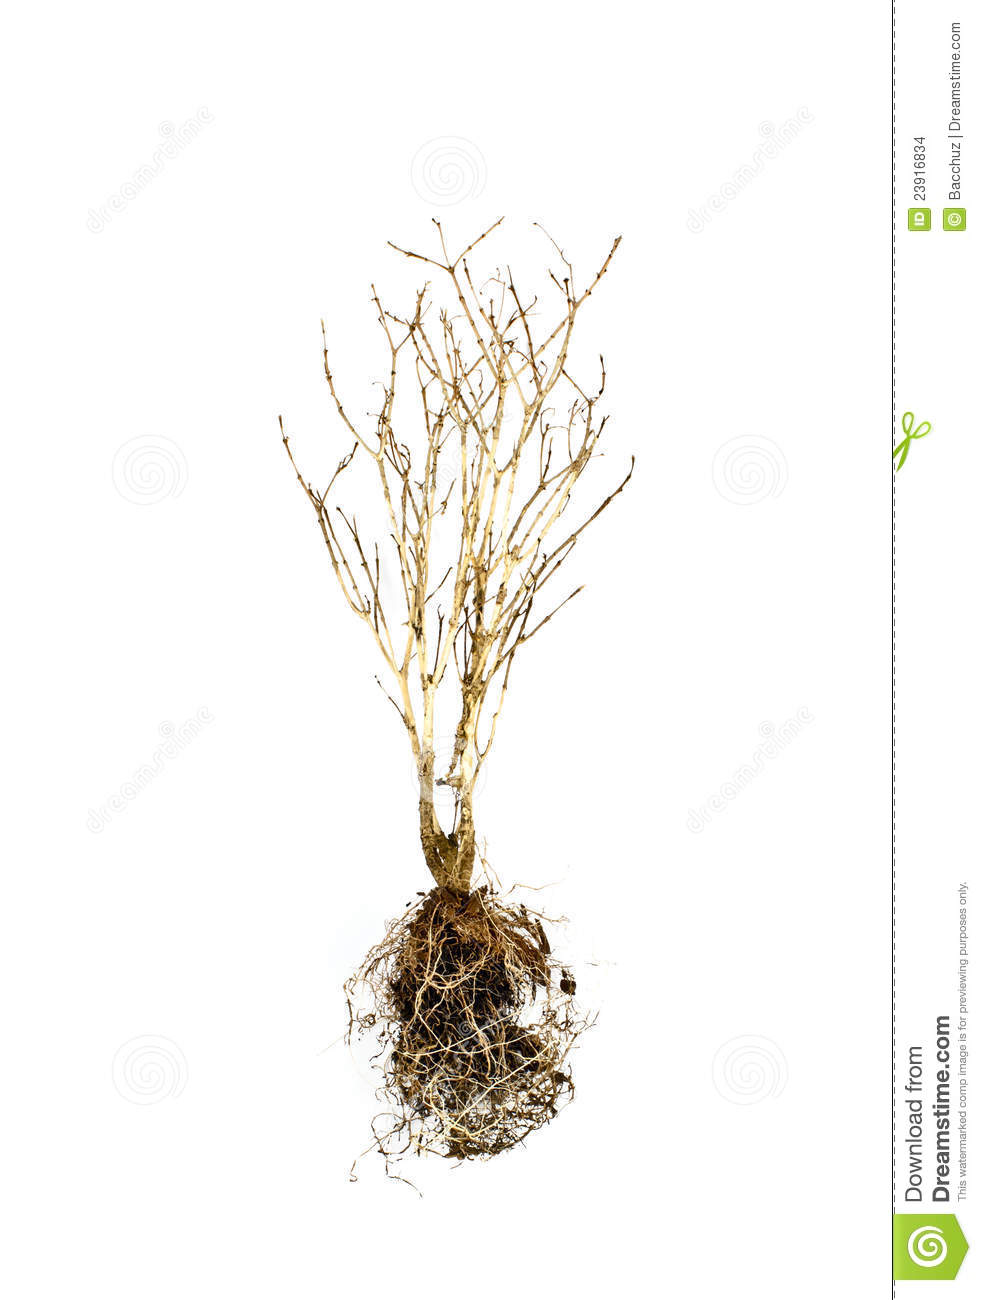 Dead Plant Stock Images - Image: 23916834